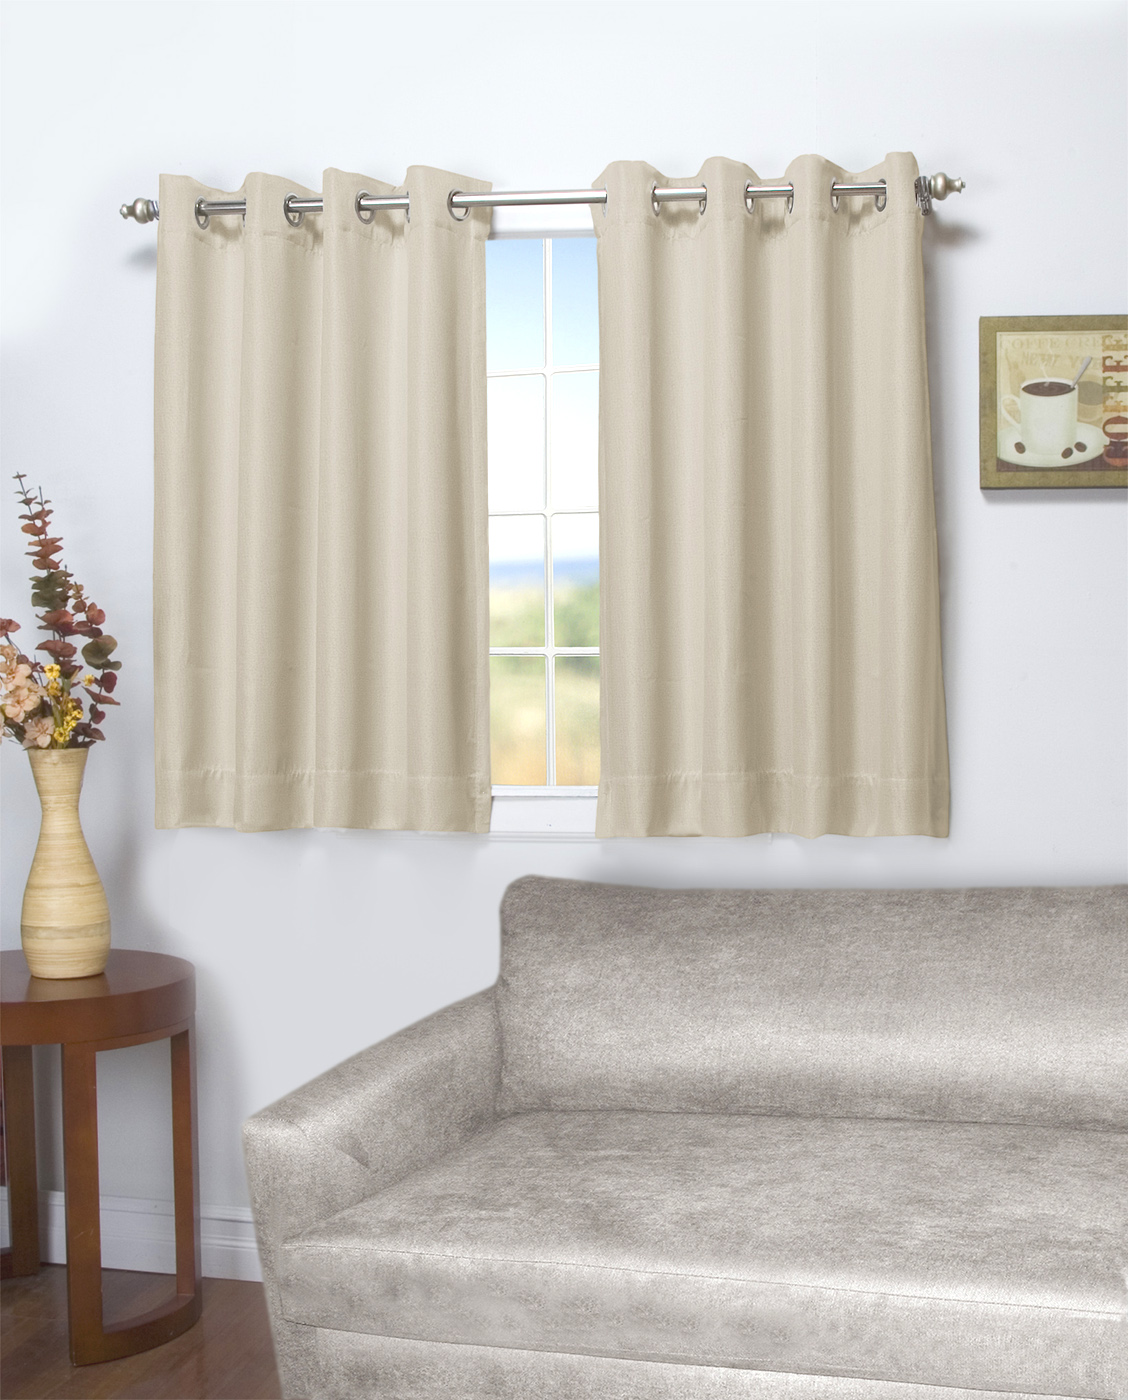 The Curtain Shop Online 28 Images Curtain Astounding Curtain Store Drapes And Curtains J